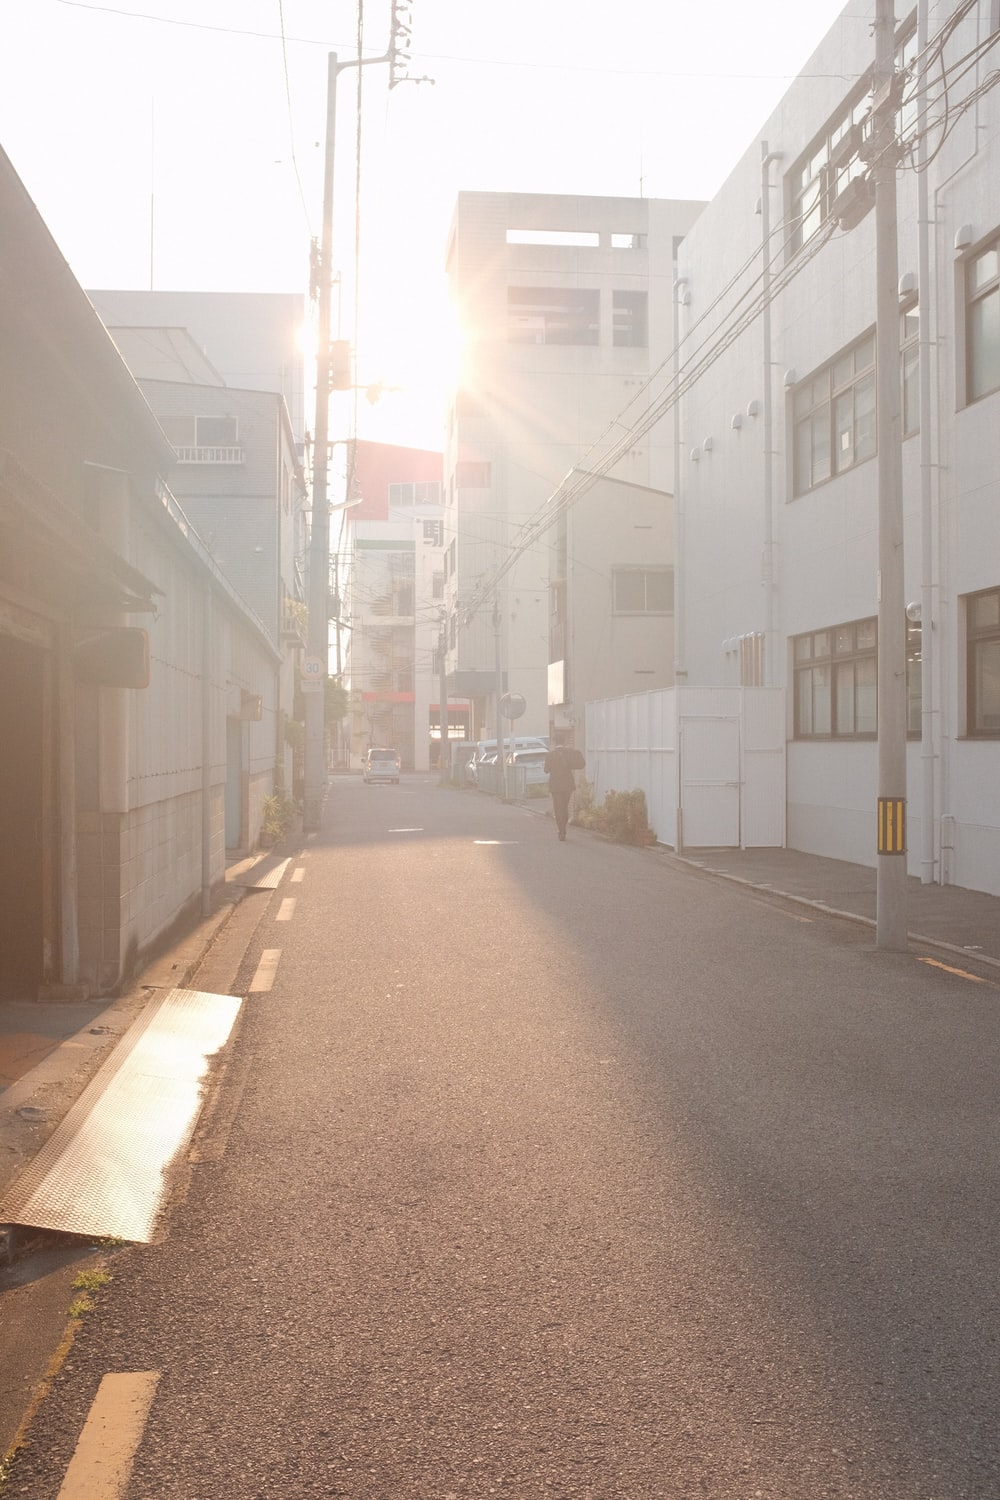 empty street between white concrete buildings during daytime